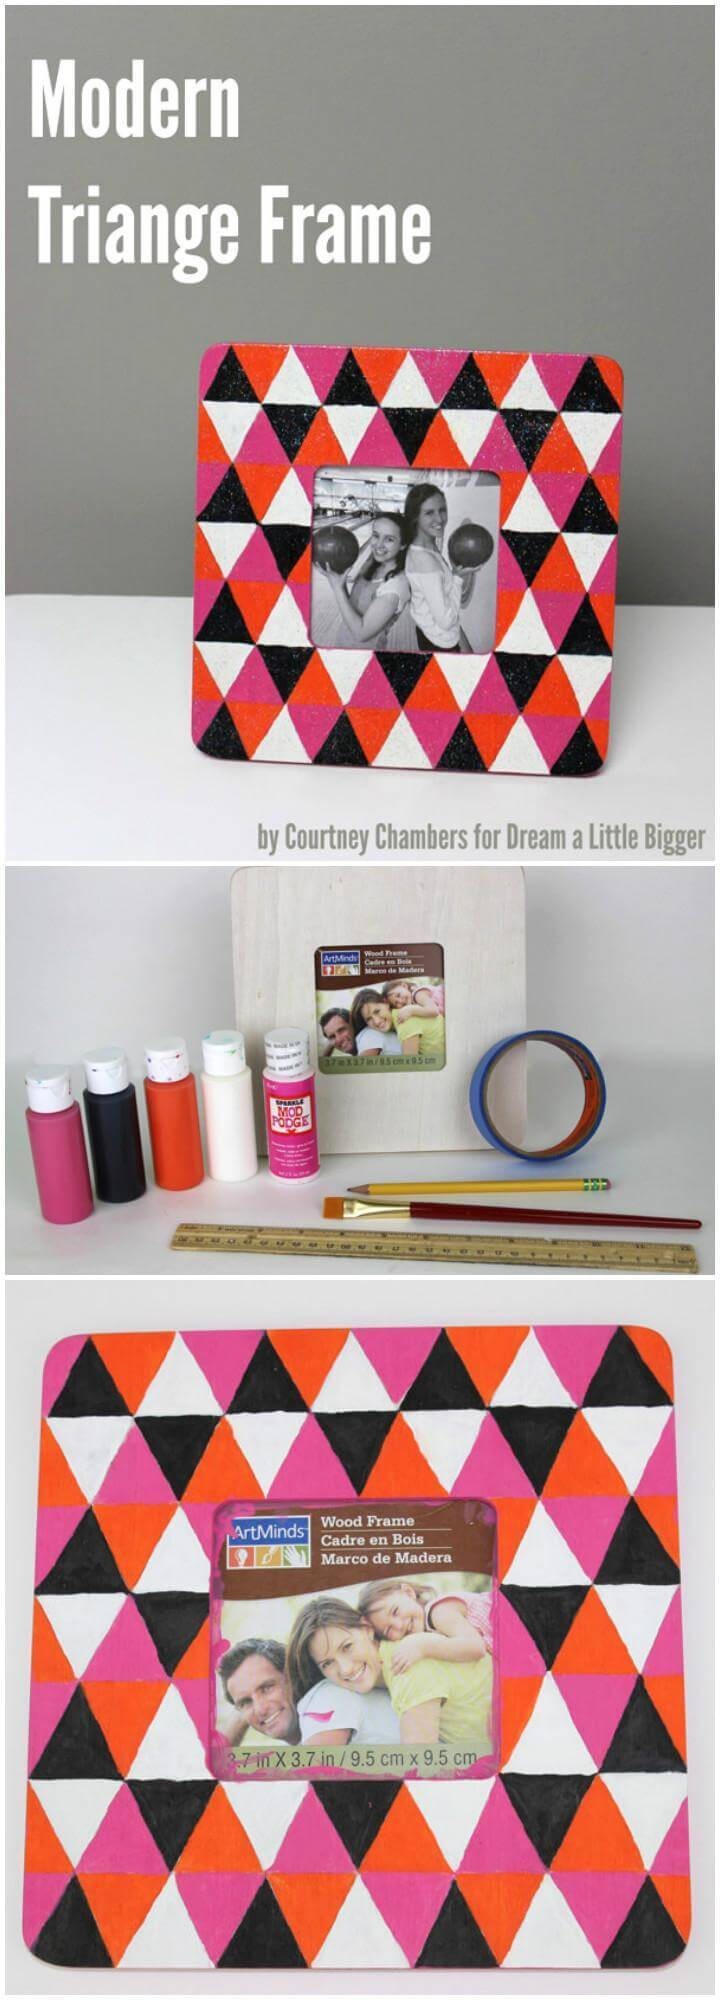 DIY Modern Triangle Photo Frame